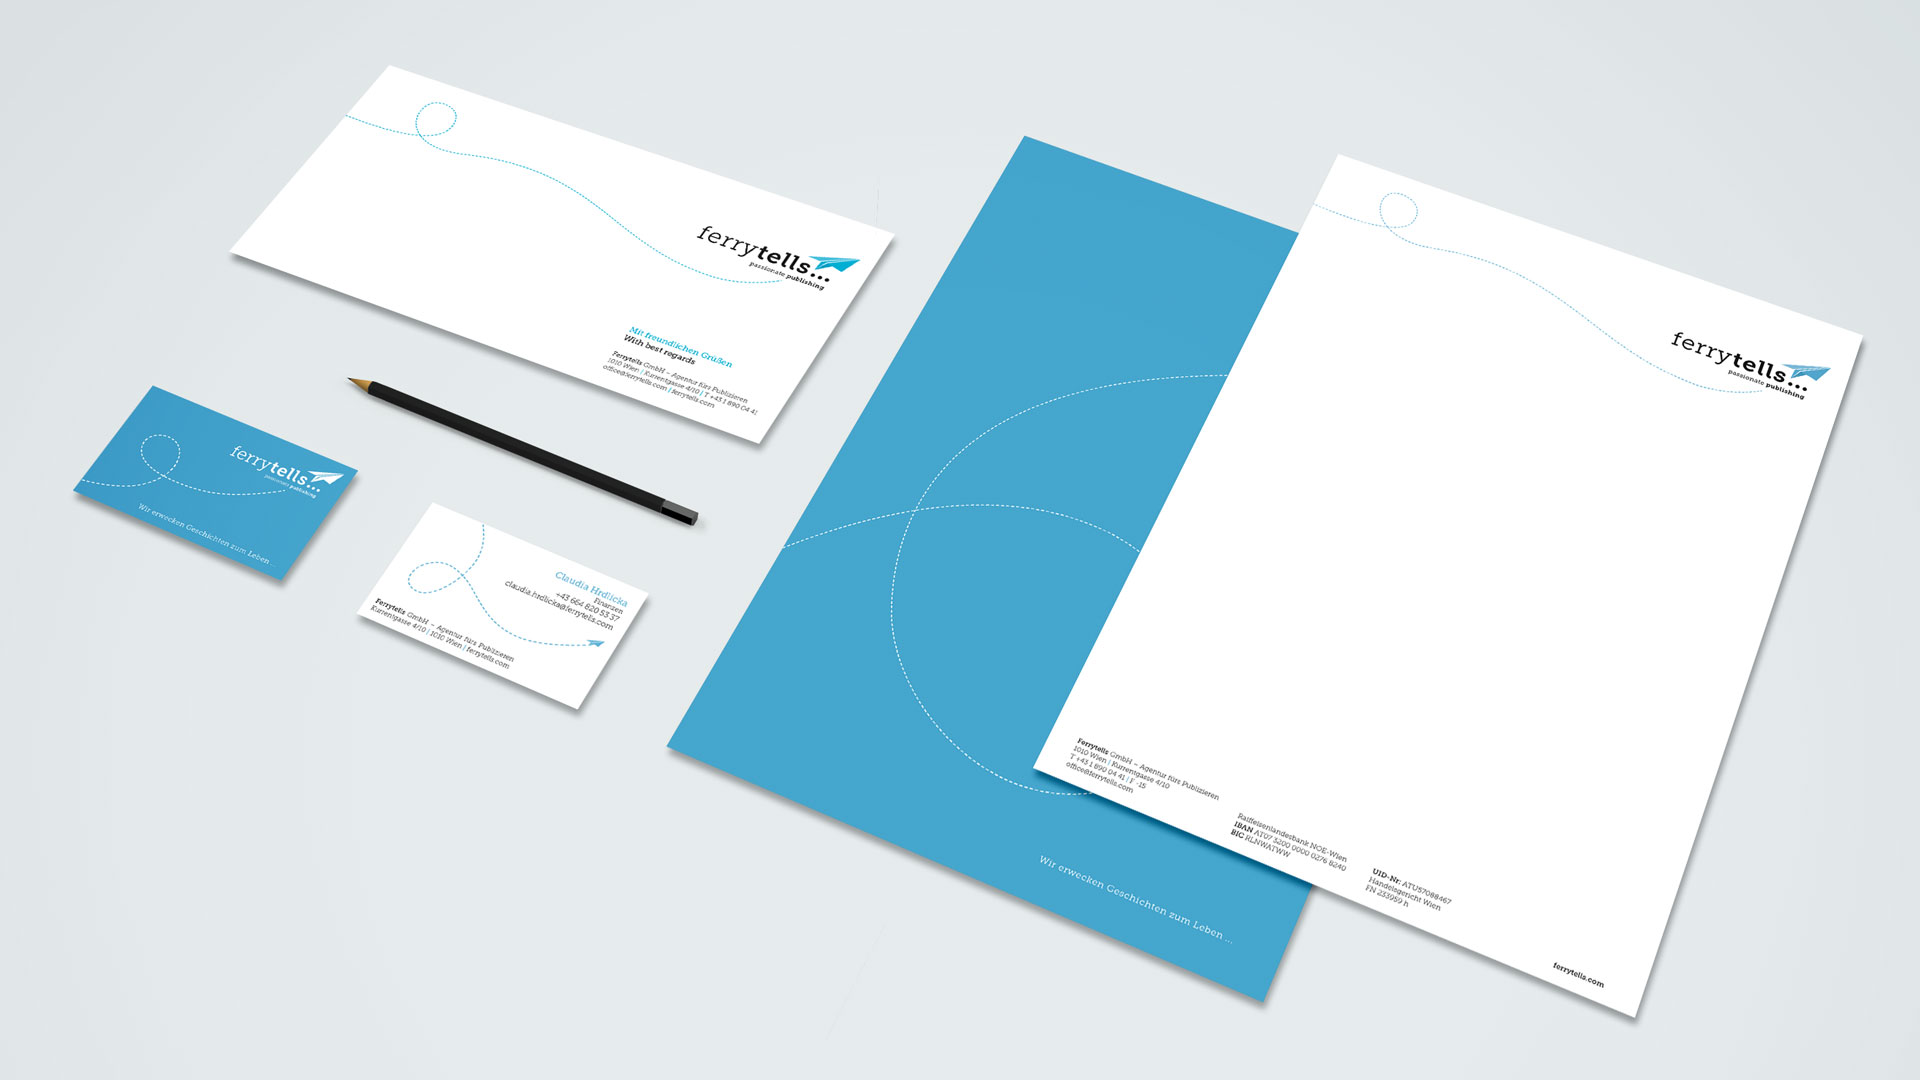 Ferrytells Corporate Design